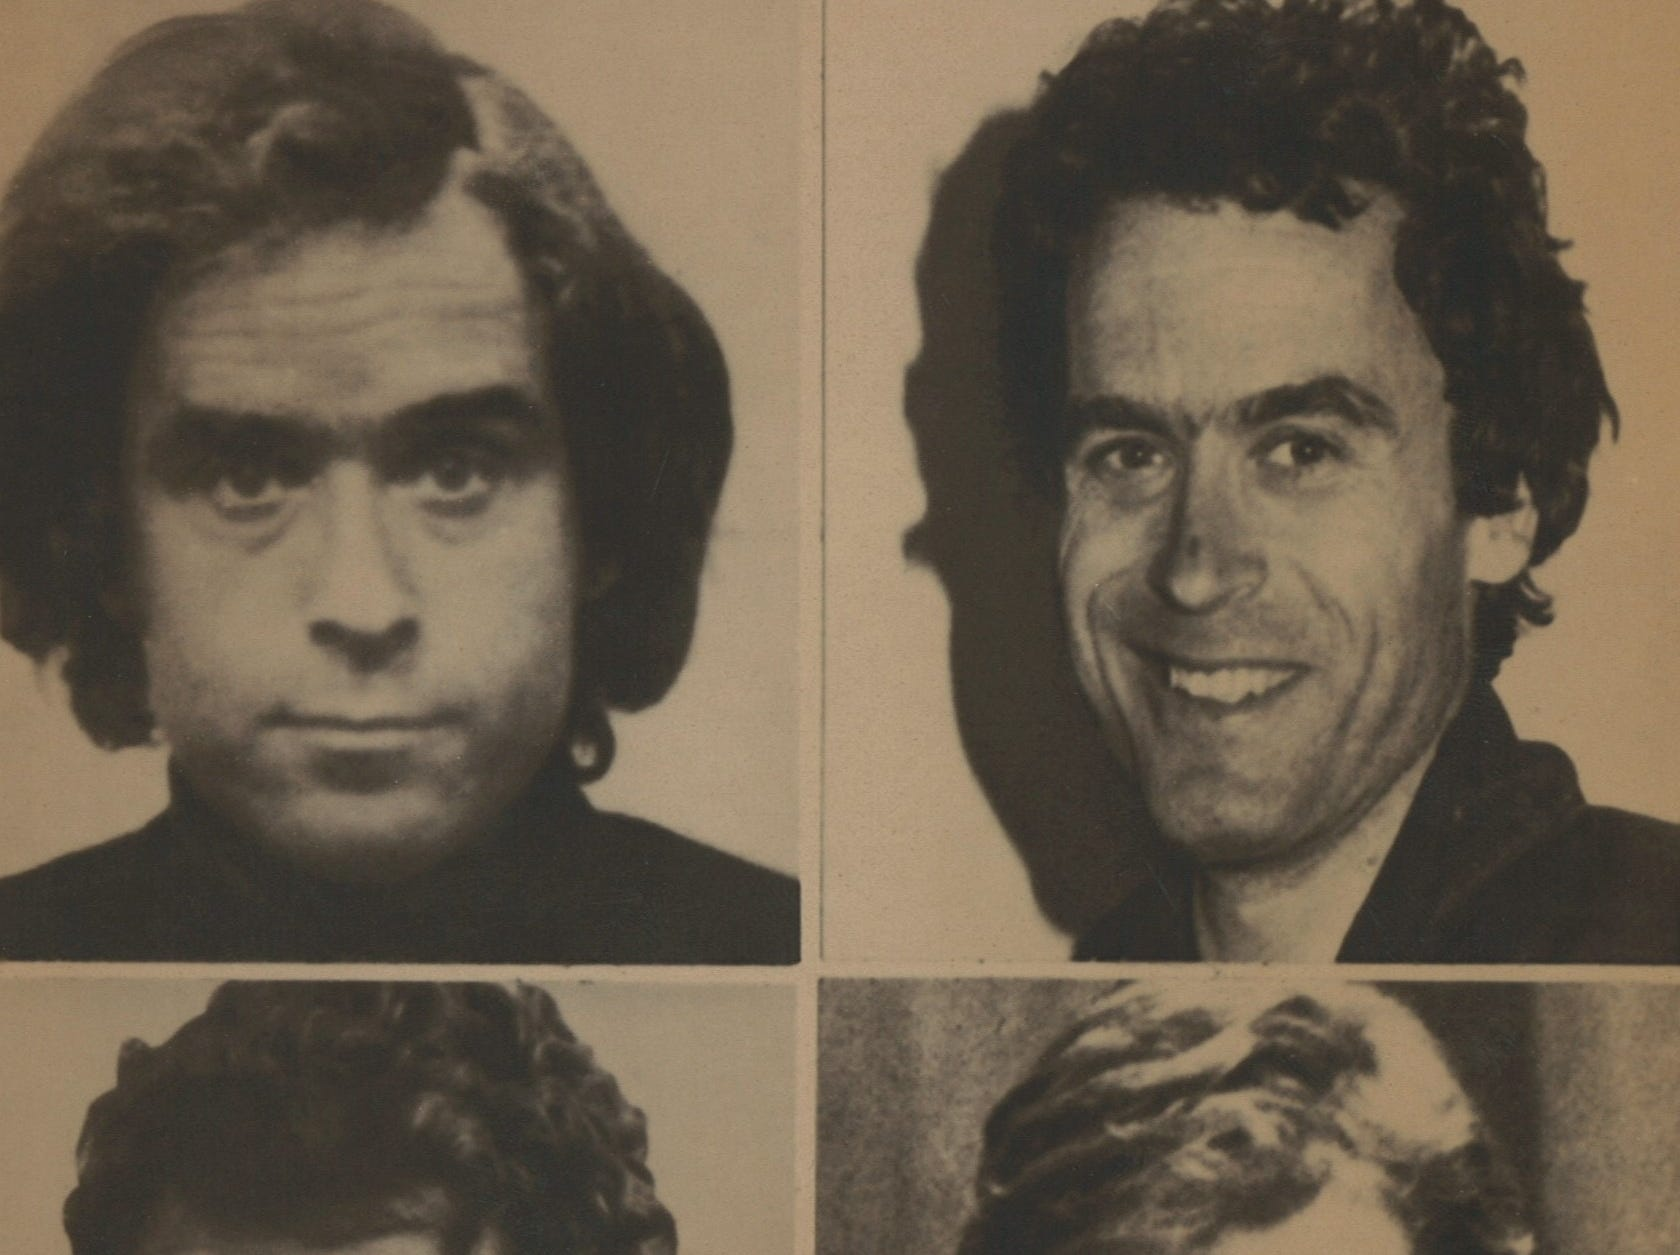 During his 1974 to 1978 killing spree, Ted Bundy was known to change his appearance and elude law enforcement.